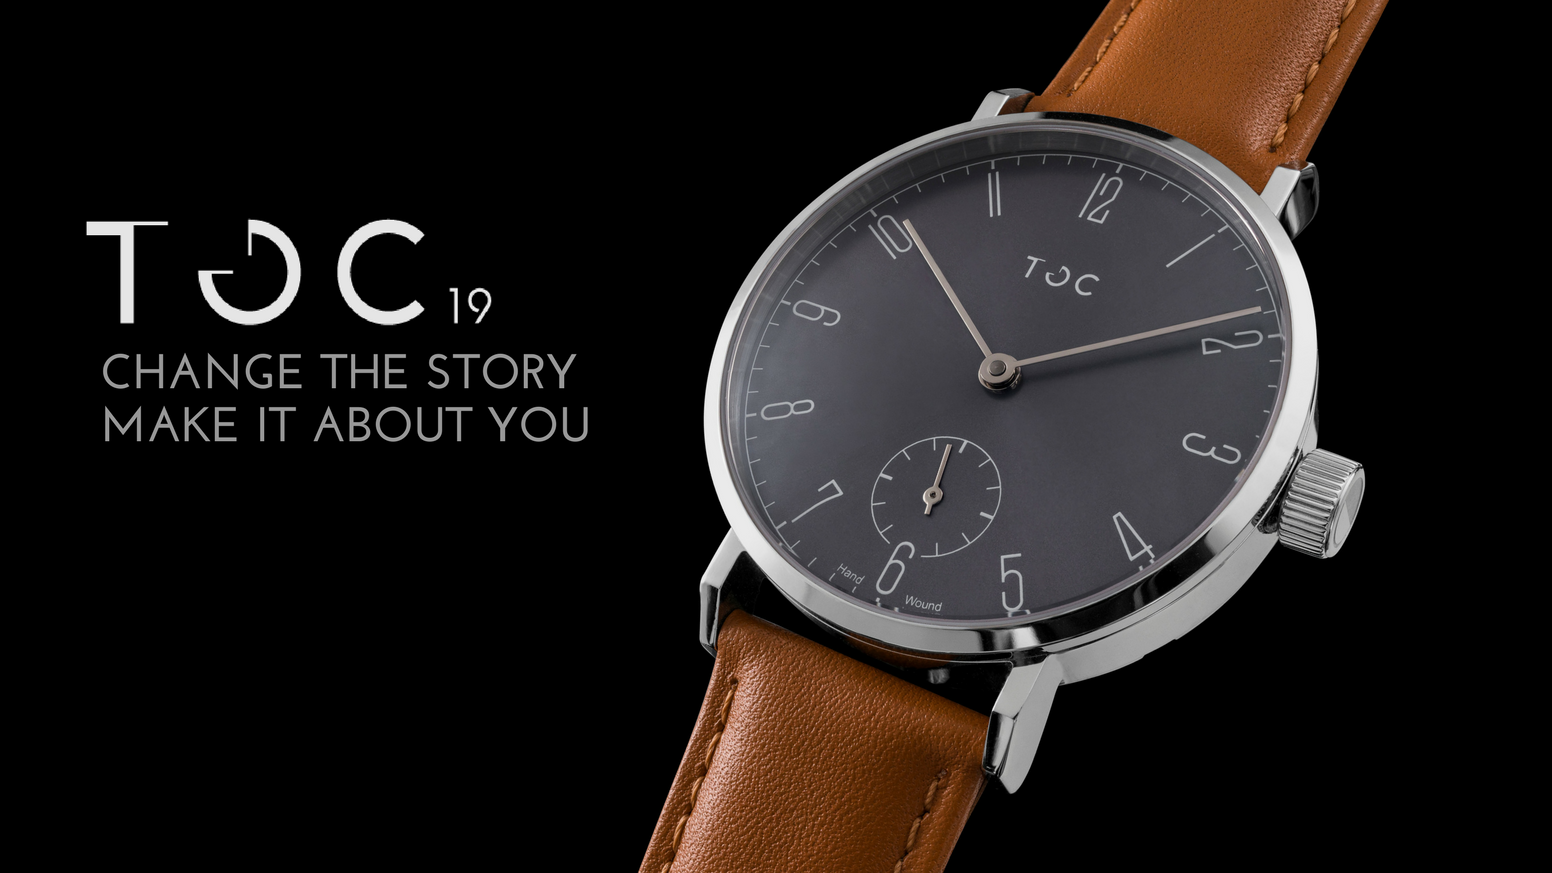 Toc19. A hand wound watch that makes a personal statement